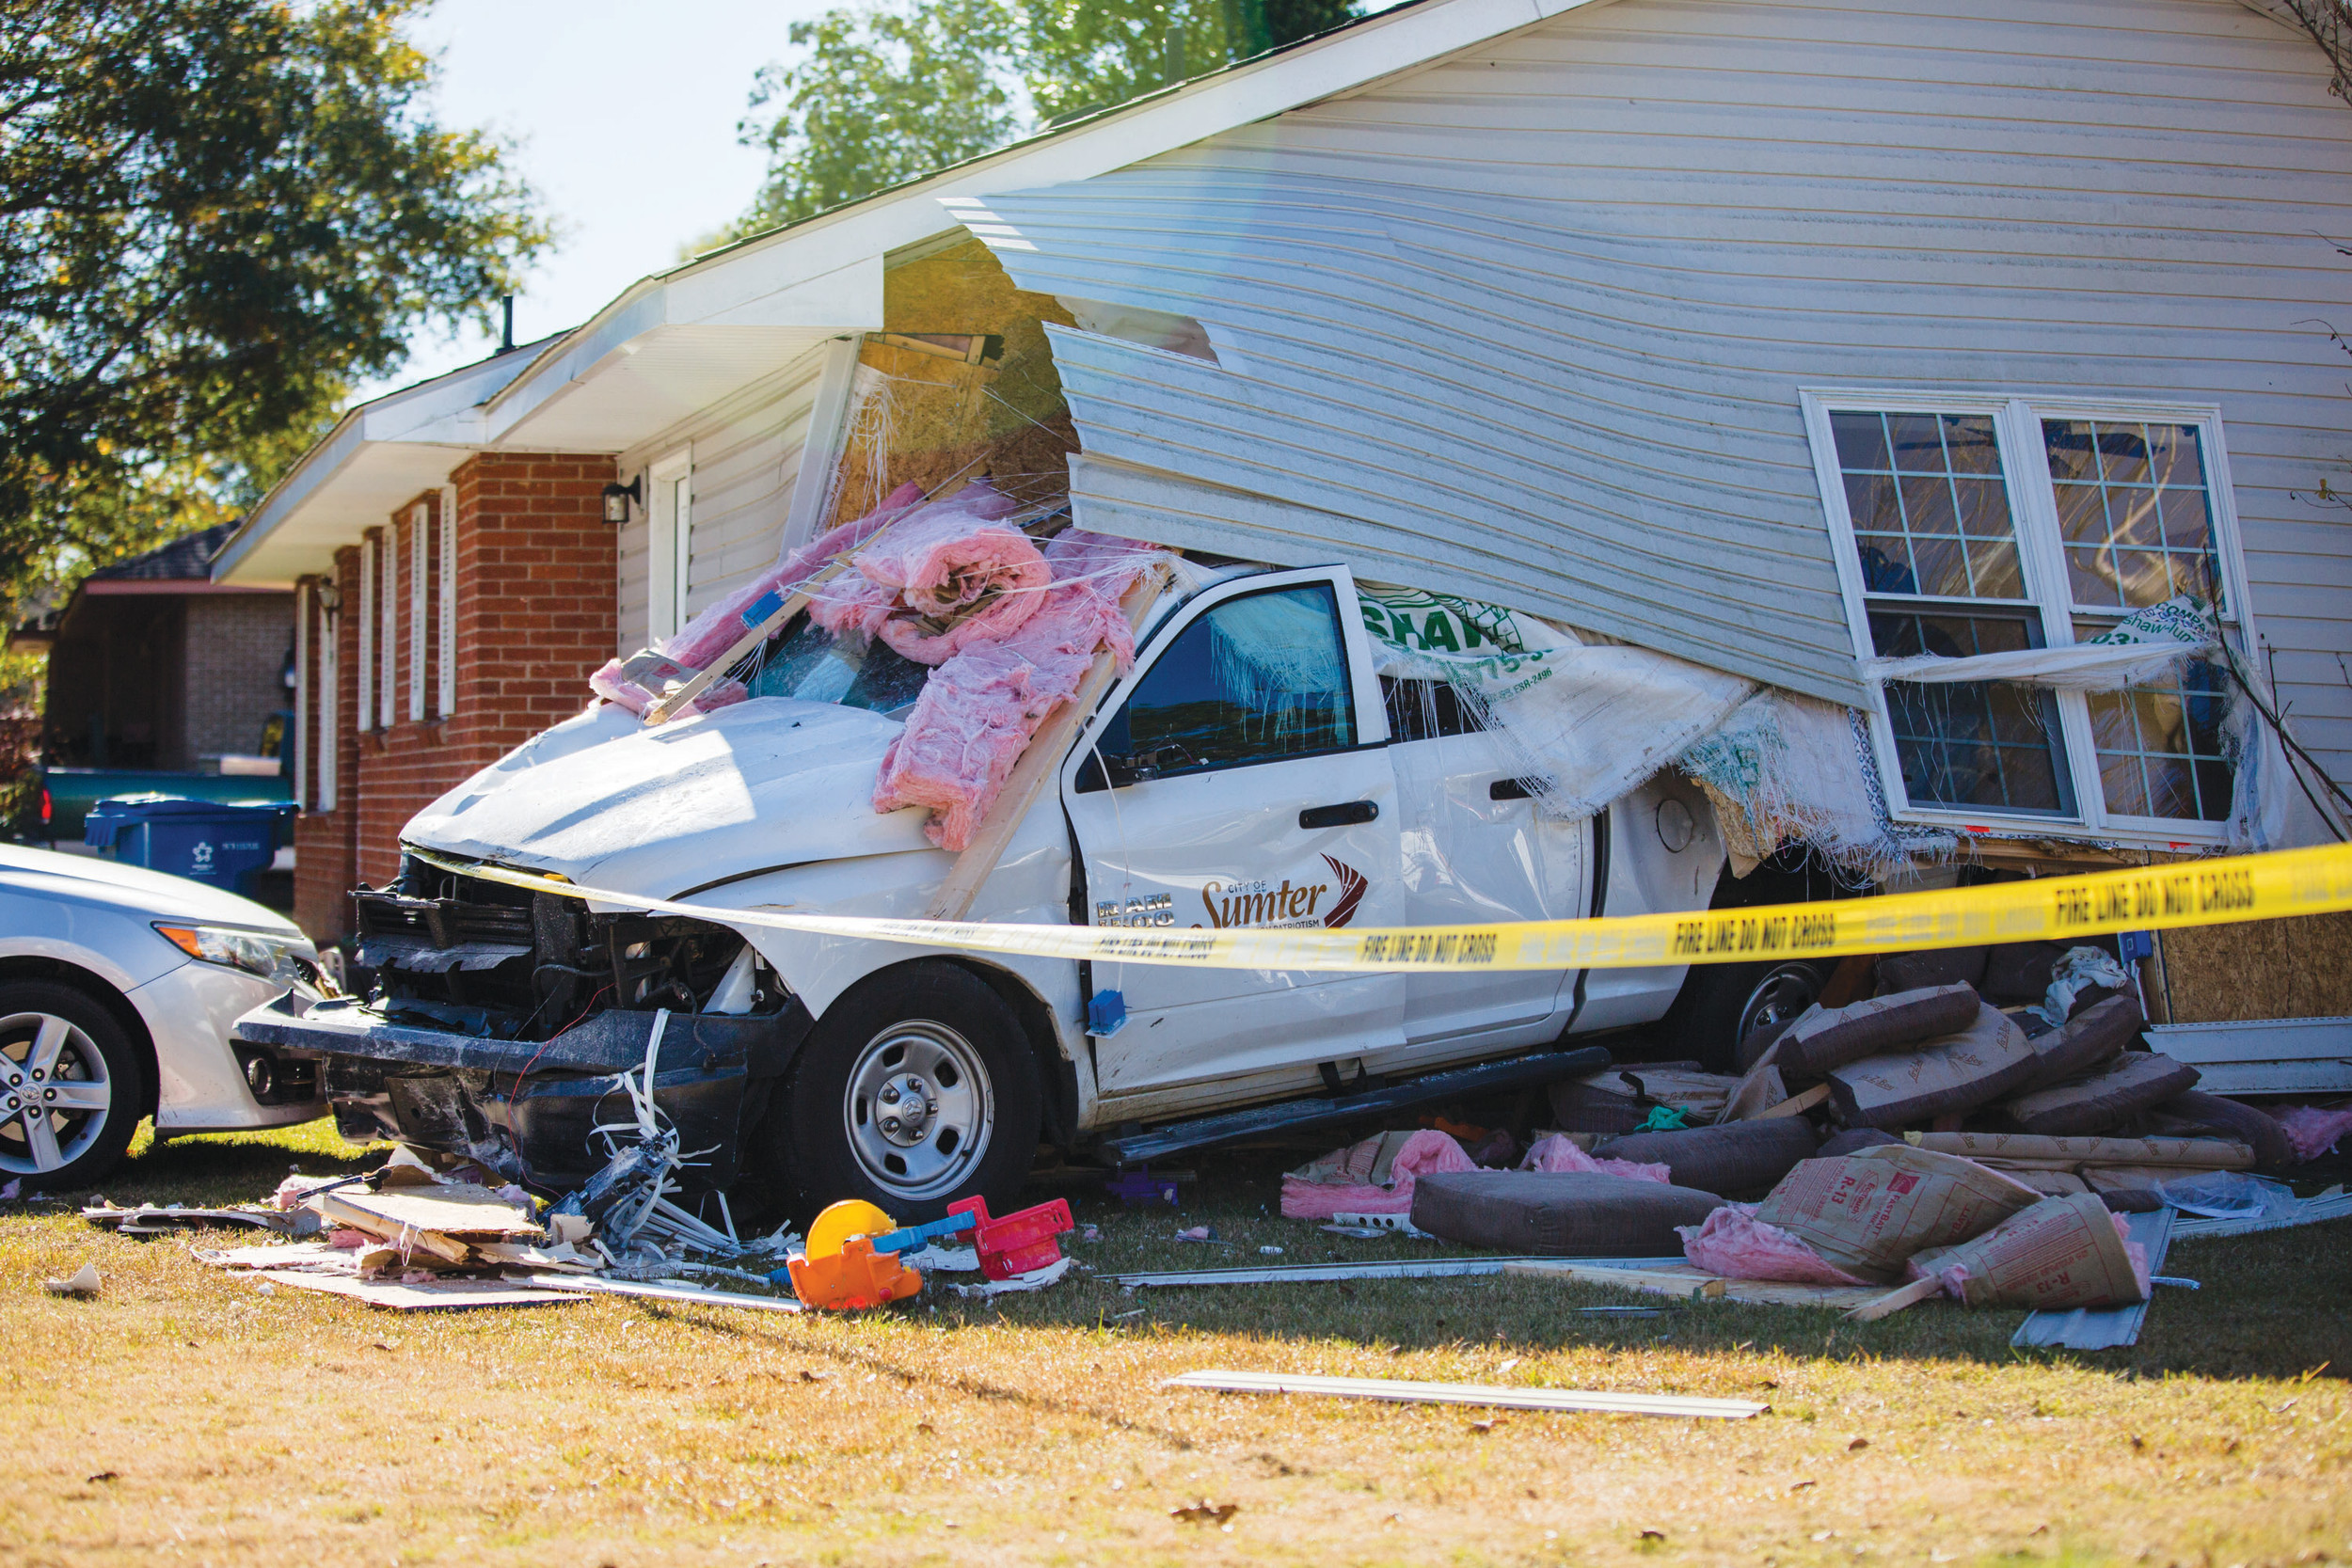 A City of Sumter truck slammed through a house Monday morning, seriously injuring a 2-year-old child.